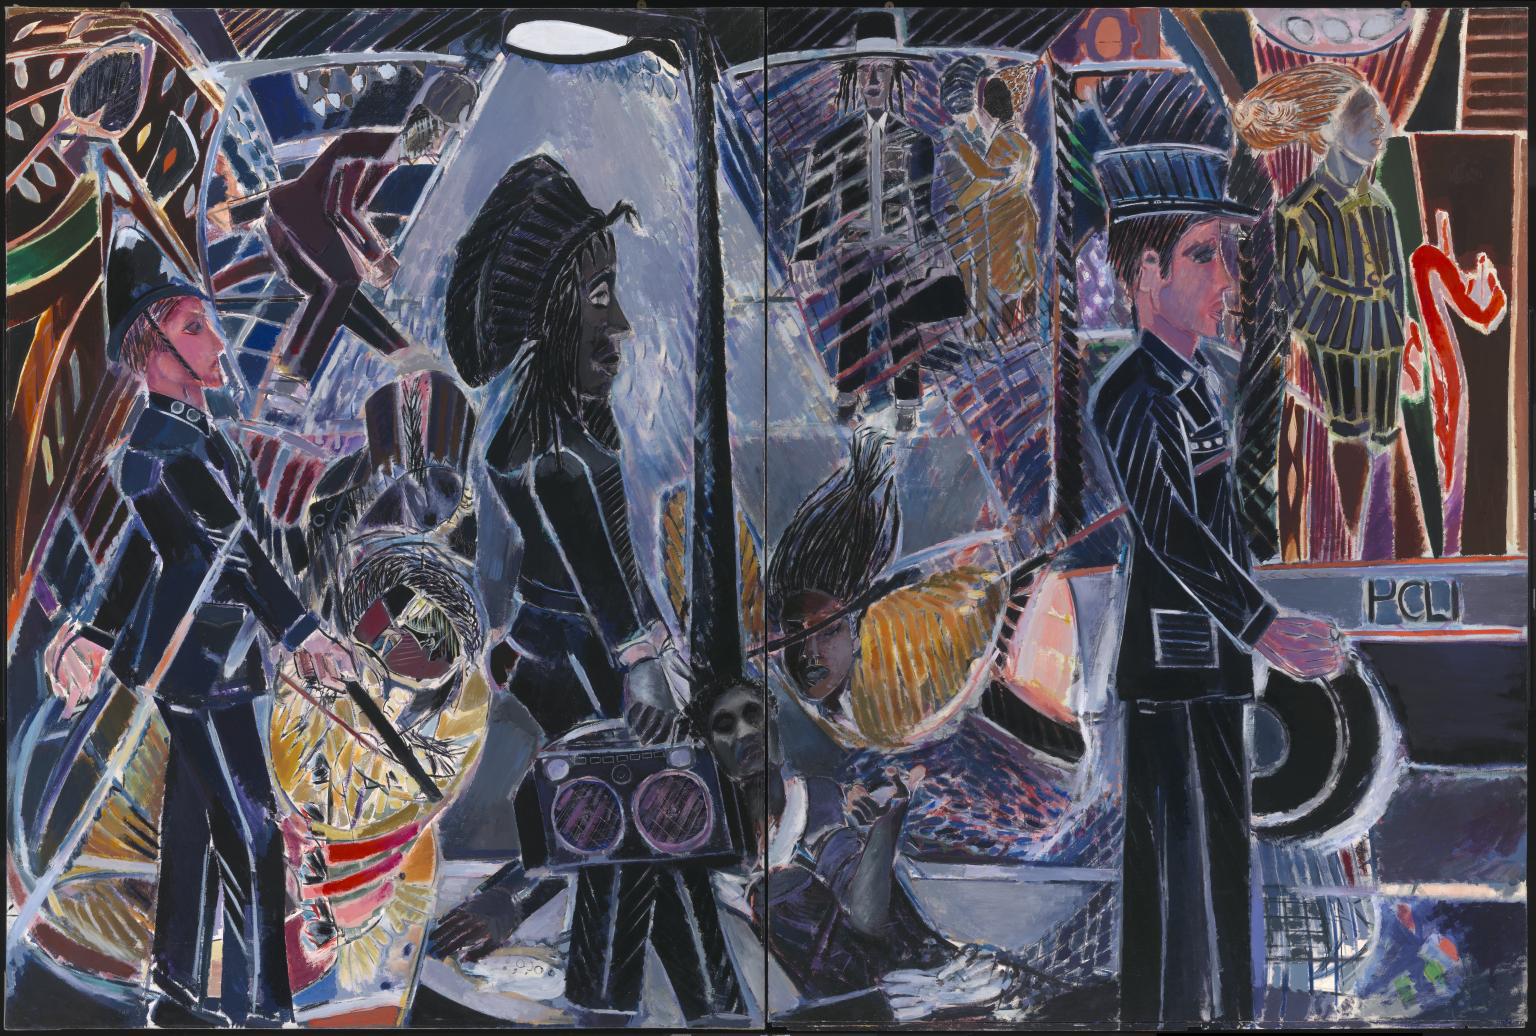 Denzil Forrester, Three Wicked Men 1982, Tate. Art from Britain and the Caribbean at Tate Britain 1 December 2021 - 3 April 2022